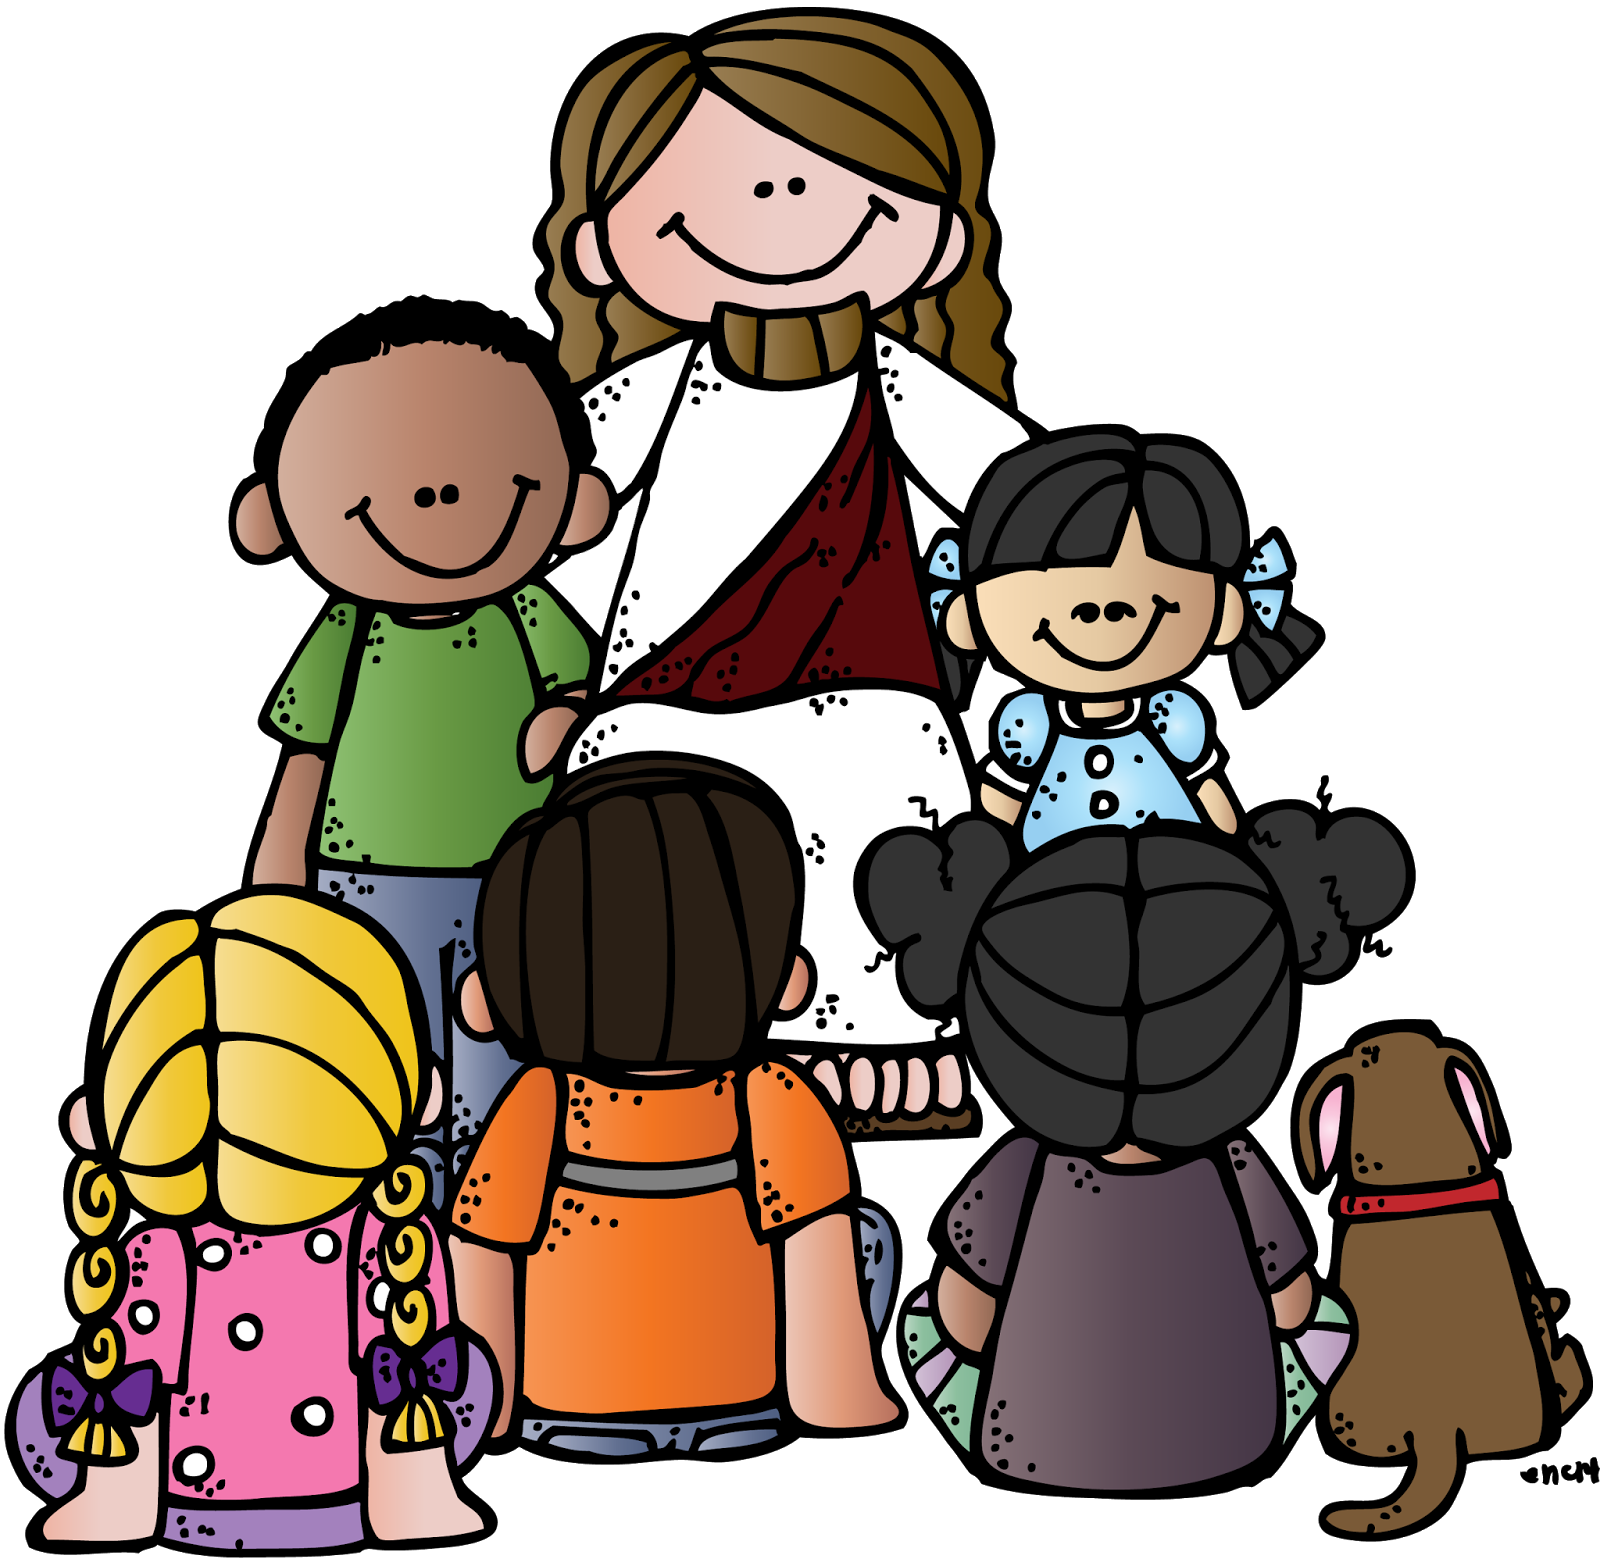 Bible Christ Latter-Day Of Child Saints Jesus PNG Image